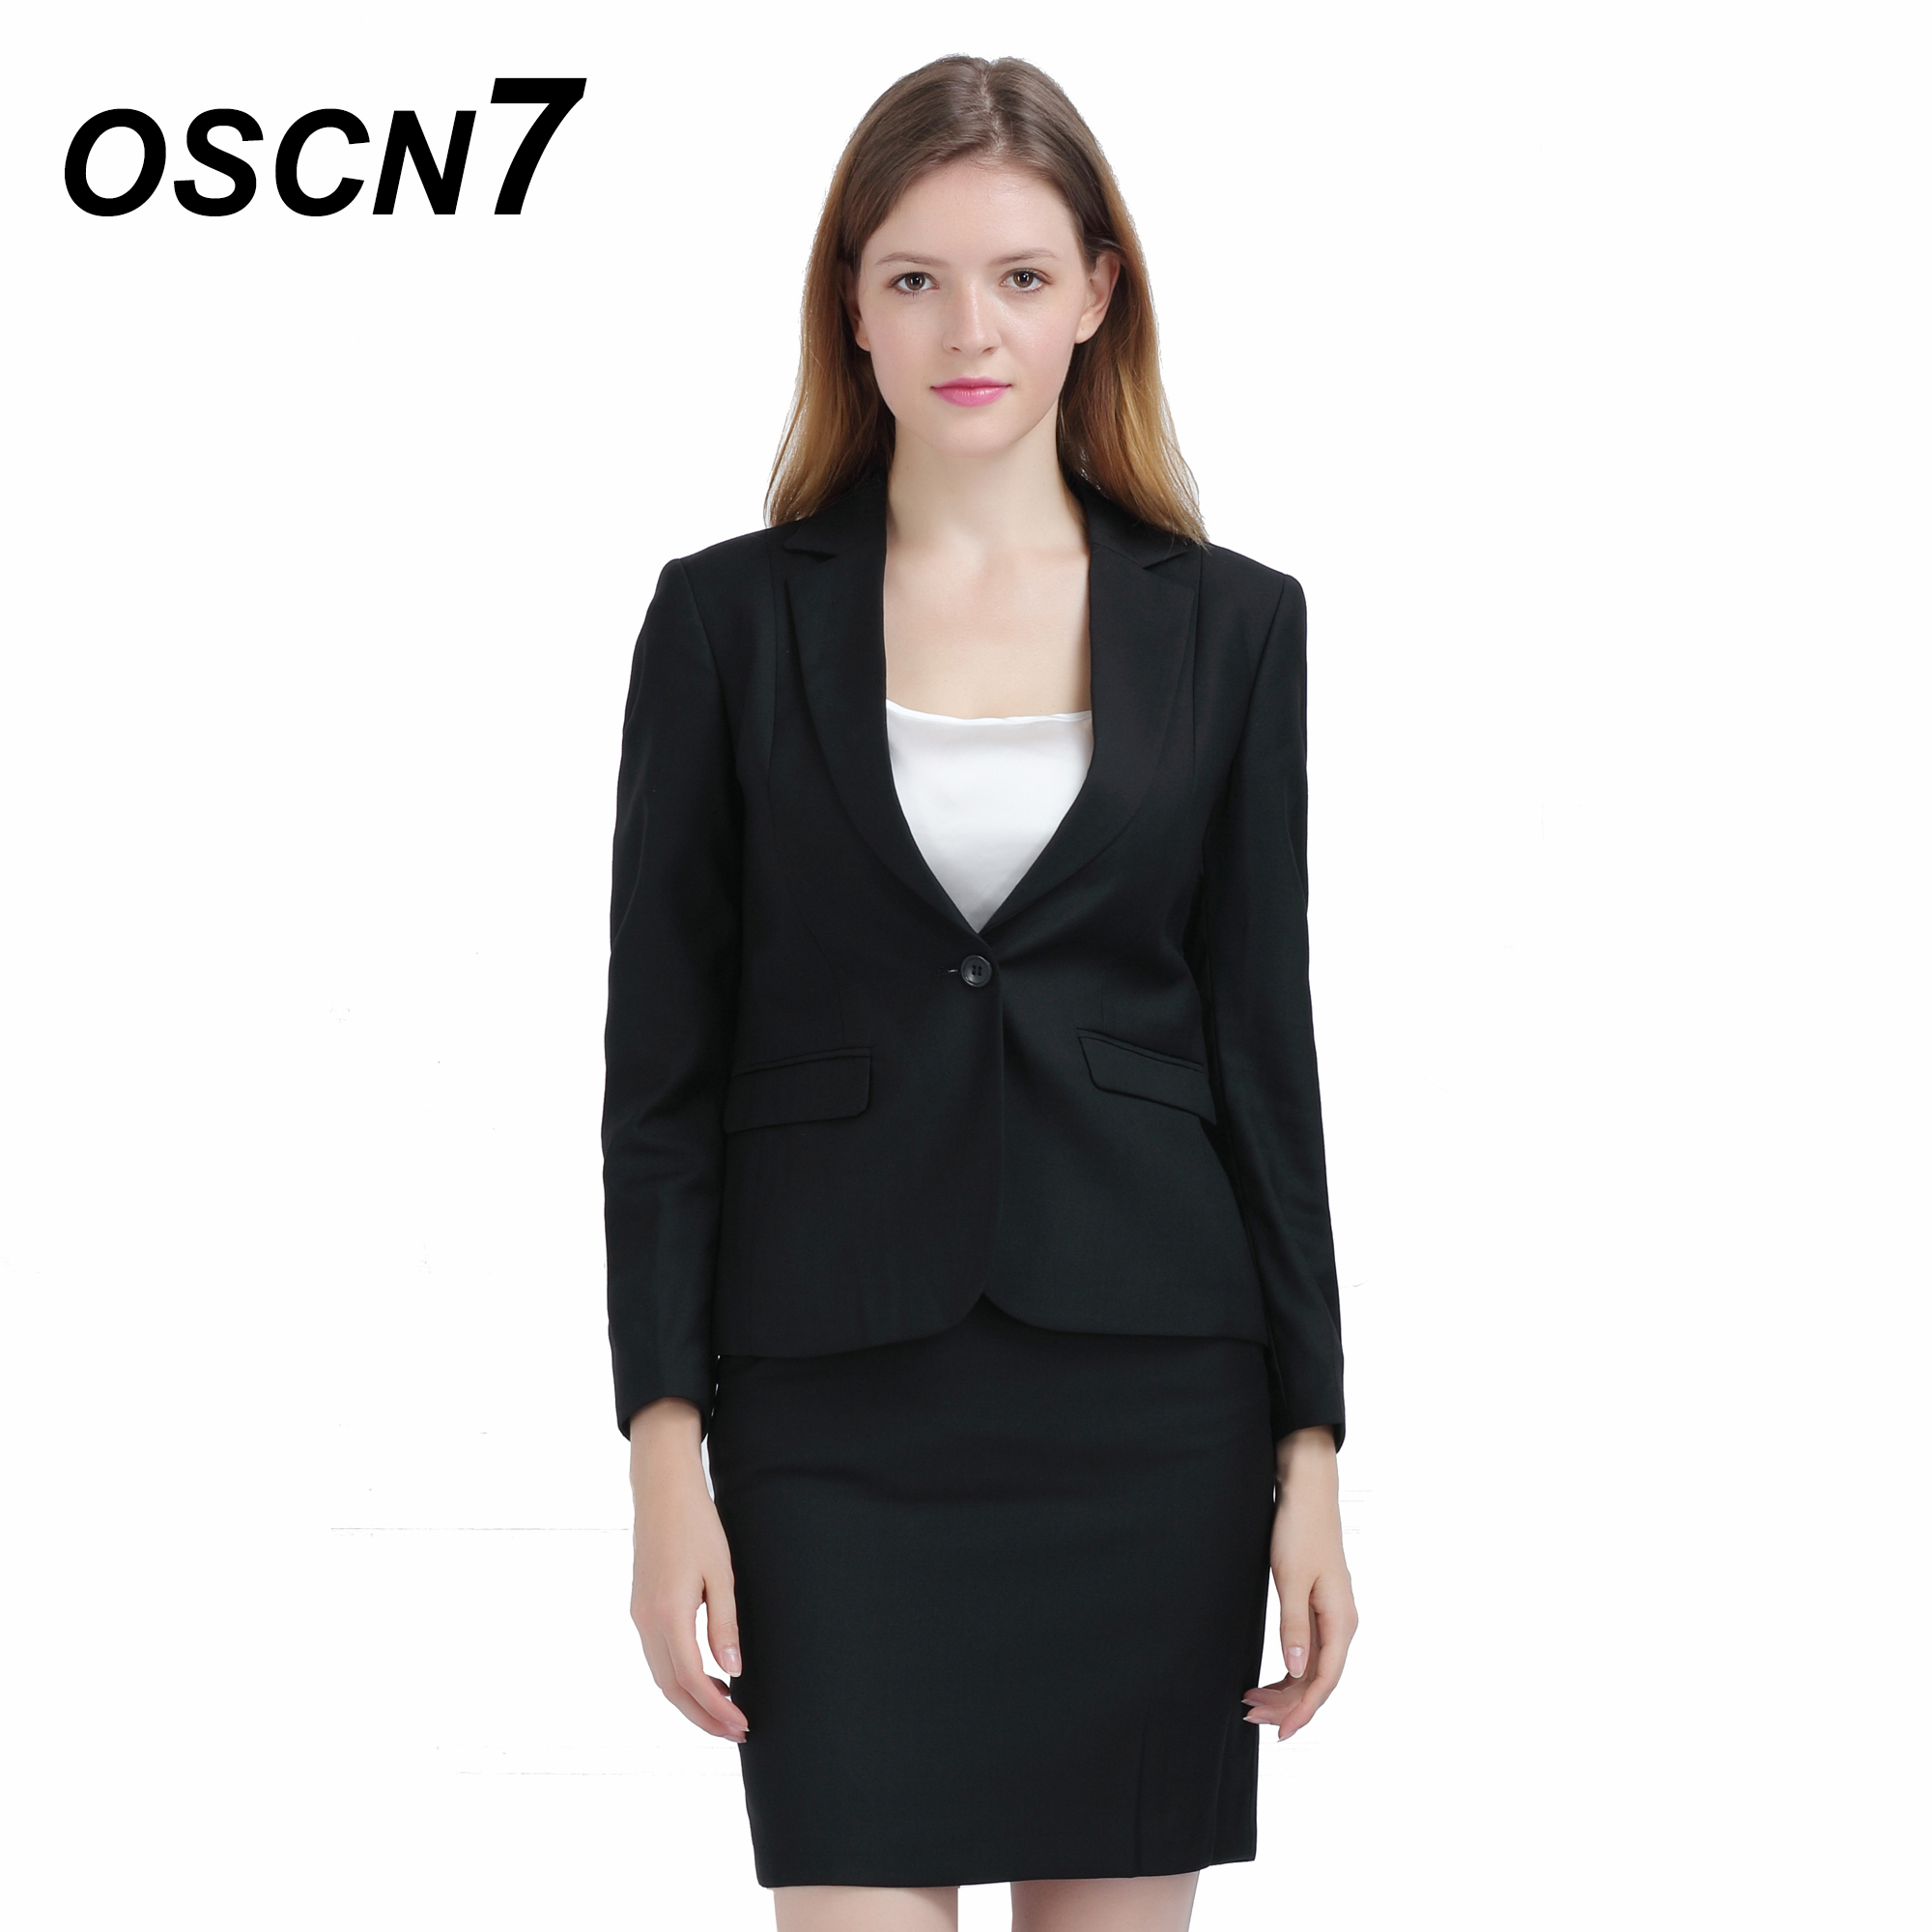 Oscn7 Slim Fit Ladies Suit With Skirt Business Plus Size Leisure Skirt Suit 2019 Fashion Office Uniform 152 Warm And Windproof